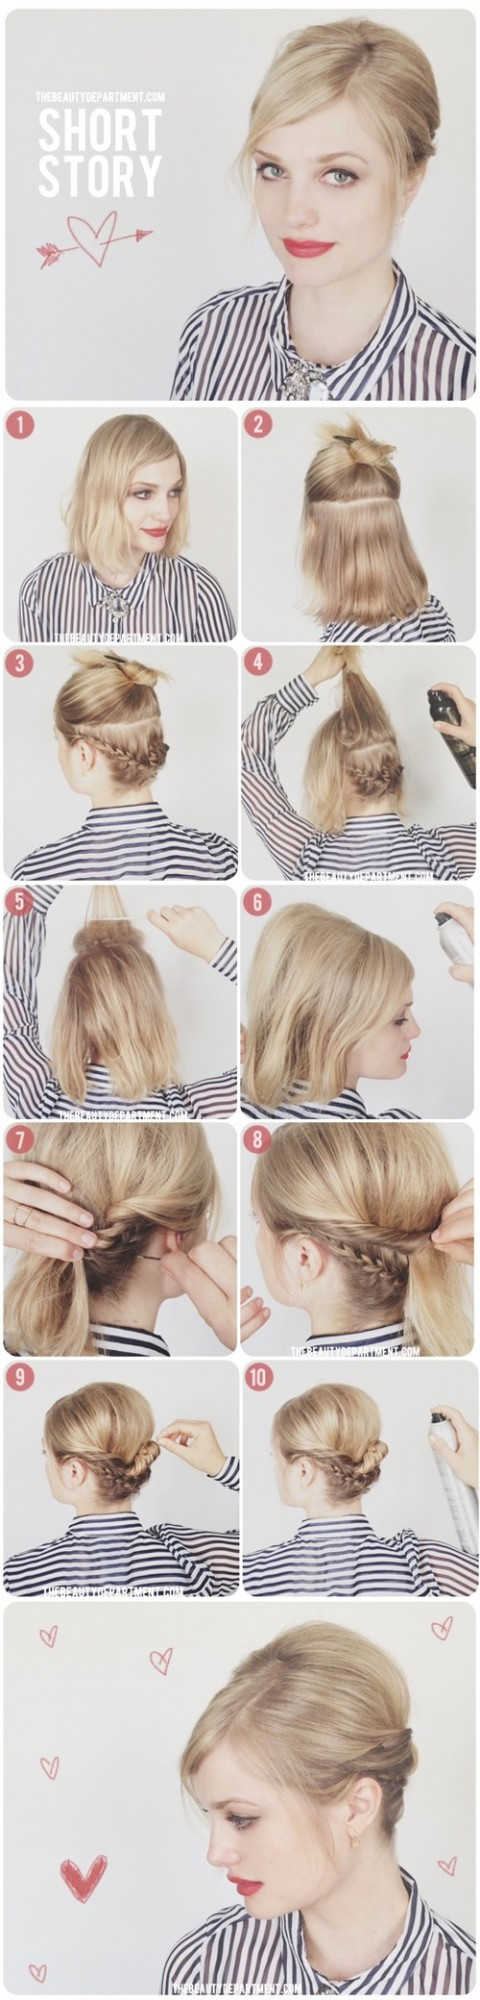 Amazing And Easy Hairstyles Tutorials For Hot Summer Days - Easy hairstyle for short hair tutorial